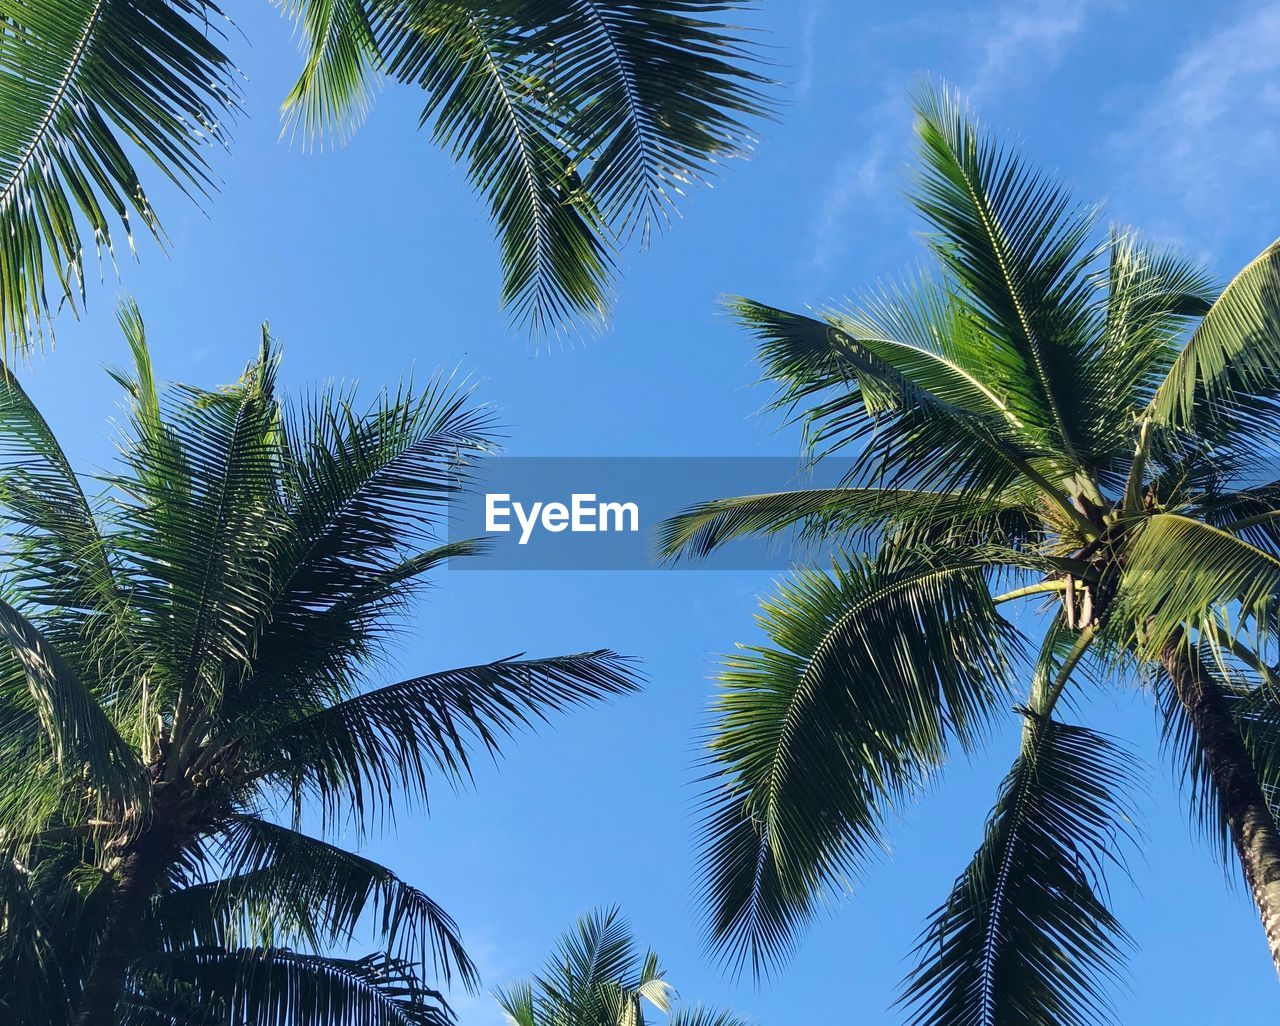 tree, palm tree, tropical climate, plant, sky, growth, beauty in nature, palm leaf, nature, leaf, no people, low angle view, tranquility, blue, coconut palm tree, green color, day, tropical tree, outdoors, tree trunk, directly below